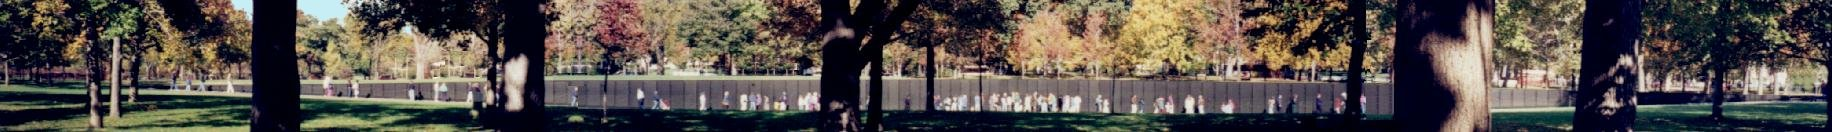 Autumn's Wall, photo © Copyright 1996, by: Don Poss